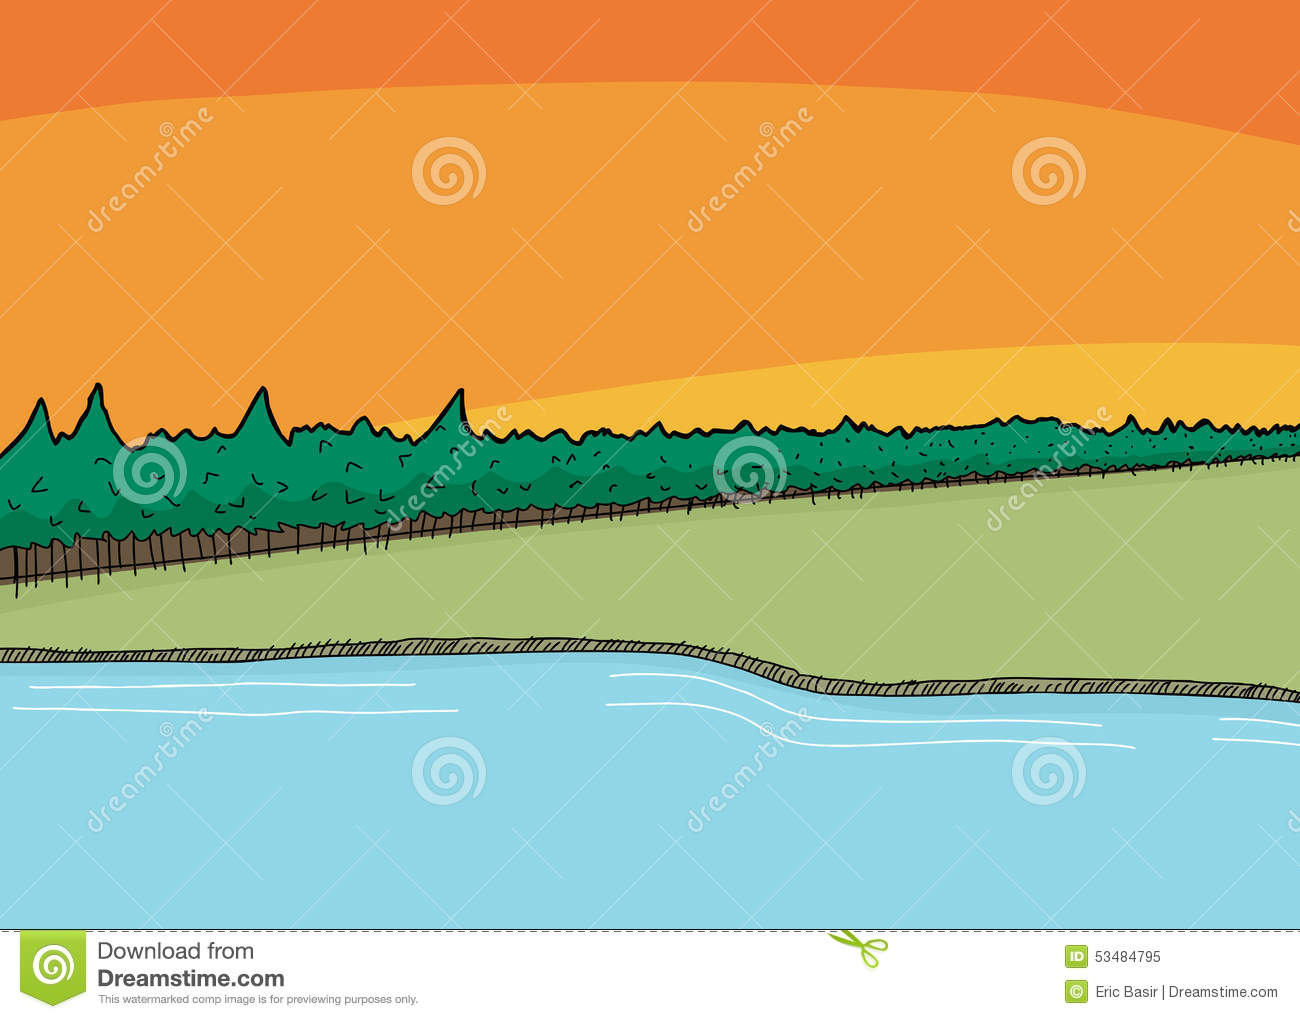 Shoreline clipart #13, Download drawings